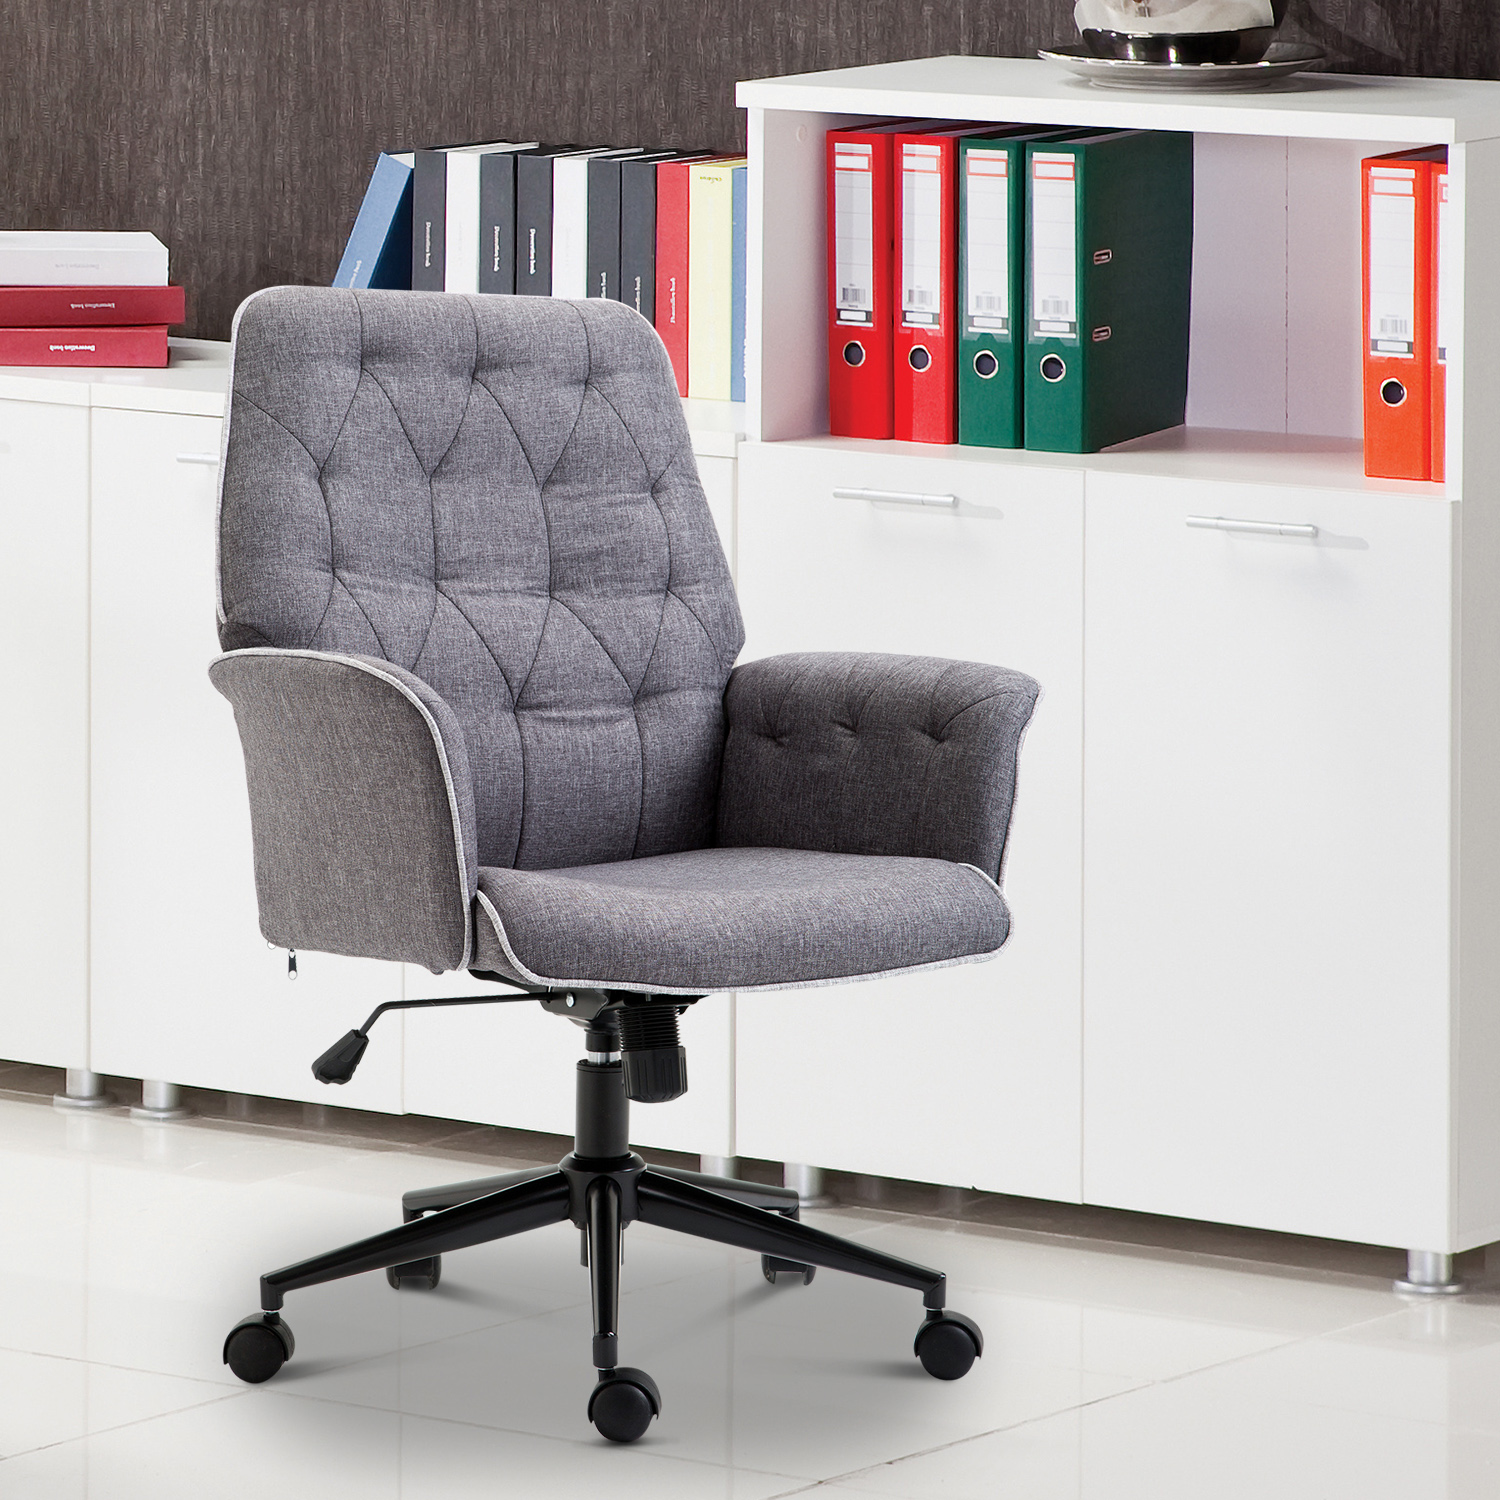 Details About Modern Tufted Home Office Chair Computer Desk Task Seat Swivel Height Adjustable